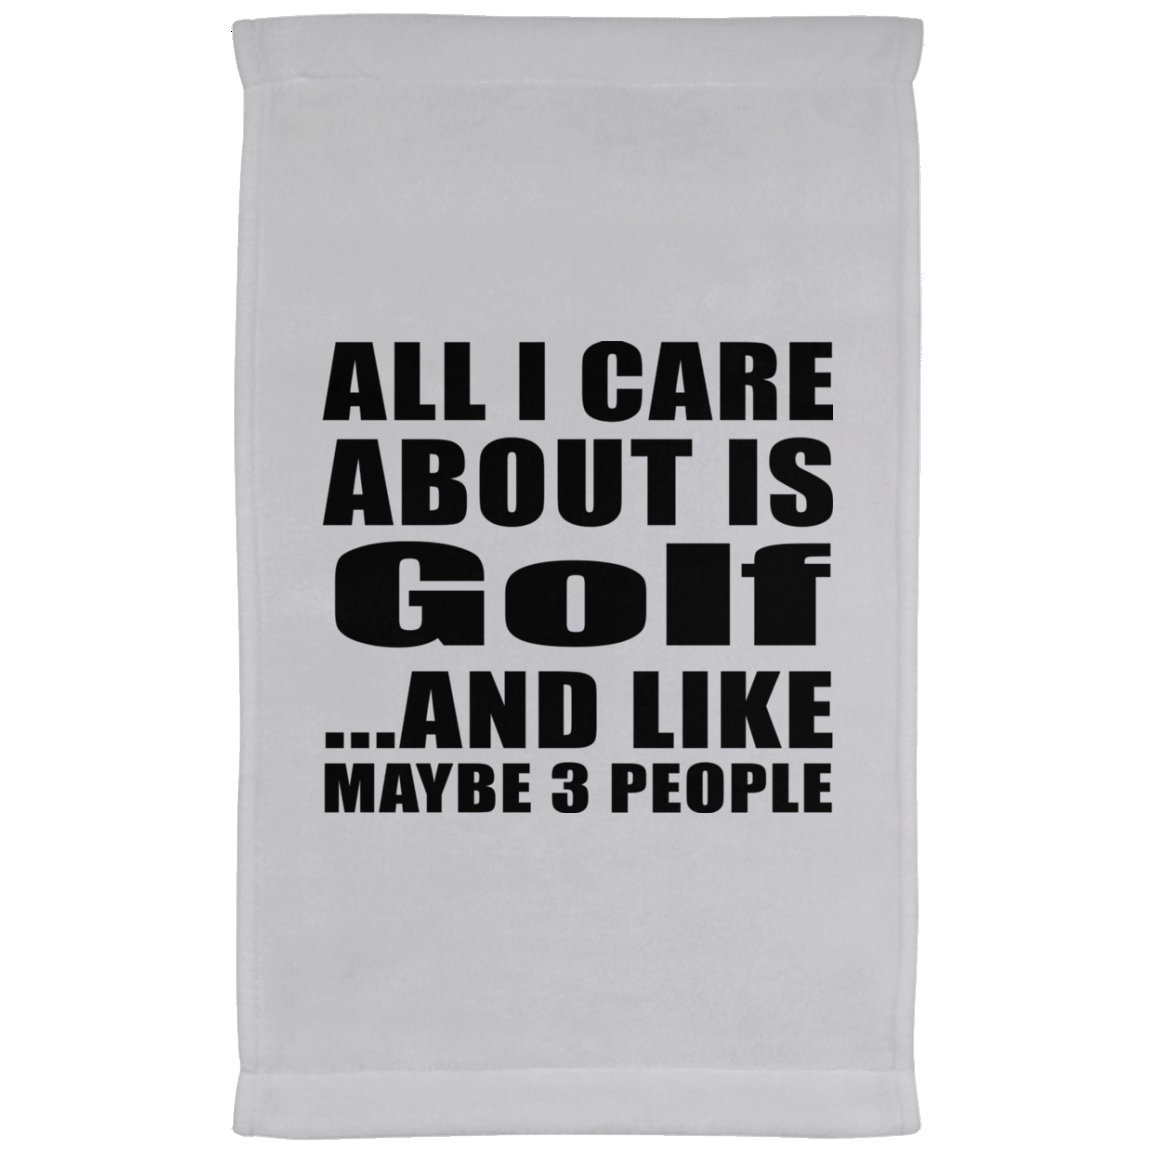 Designsify All I Care About is Golf and Like Maybe 3 People - Kitchen Towel, Microfiber Velour Towel, Best Gift for Birthday, Anniversary, Easter, Valentine's Mother's Father's Day